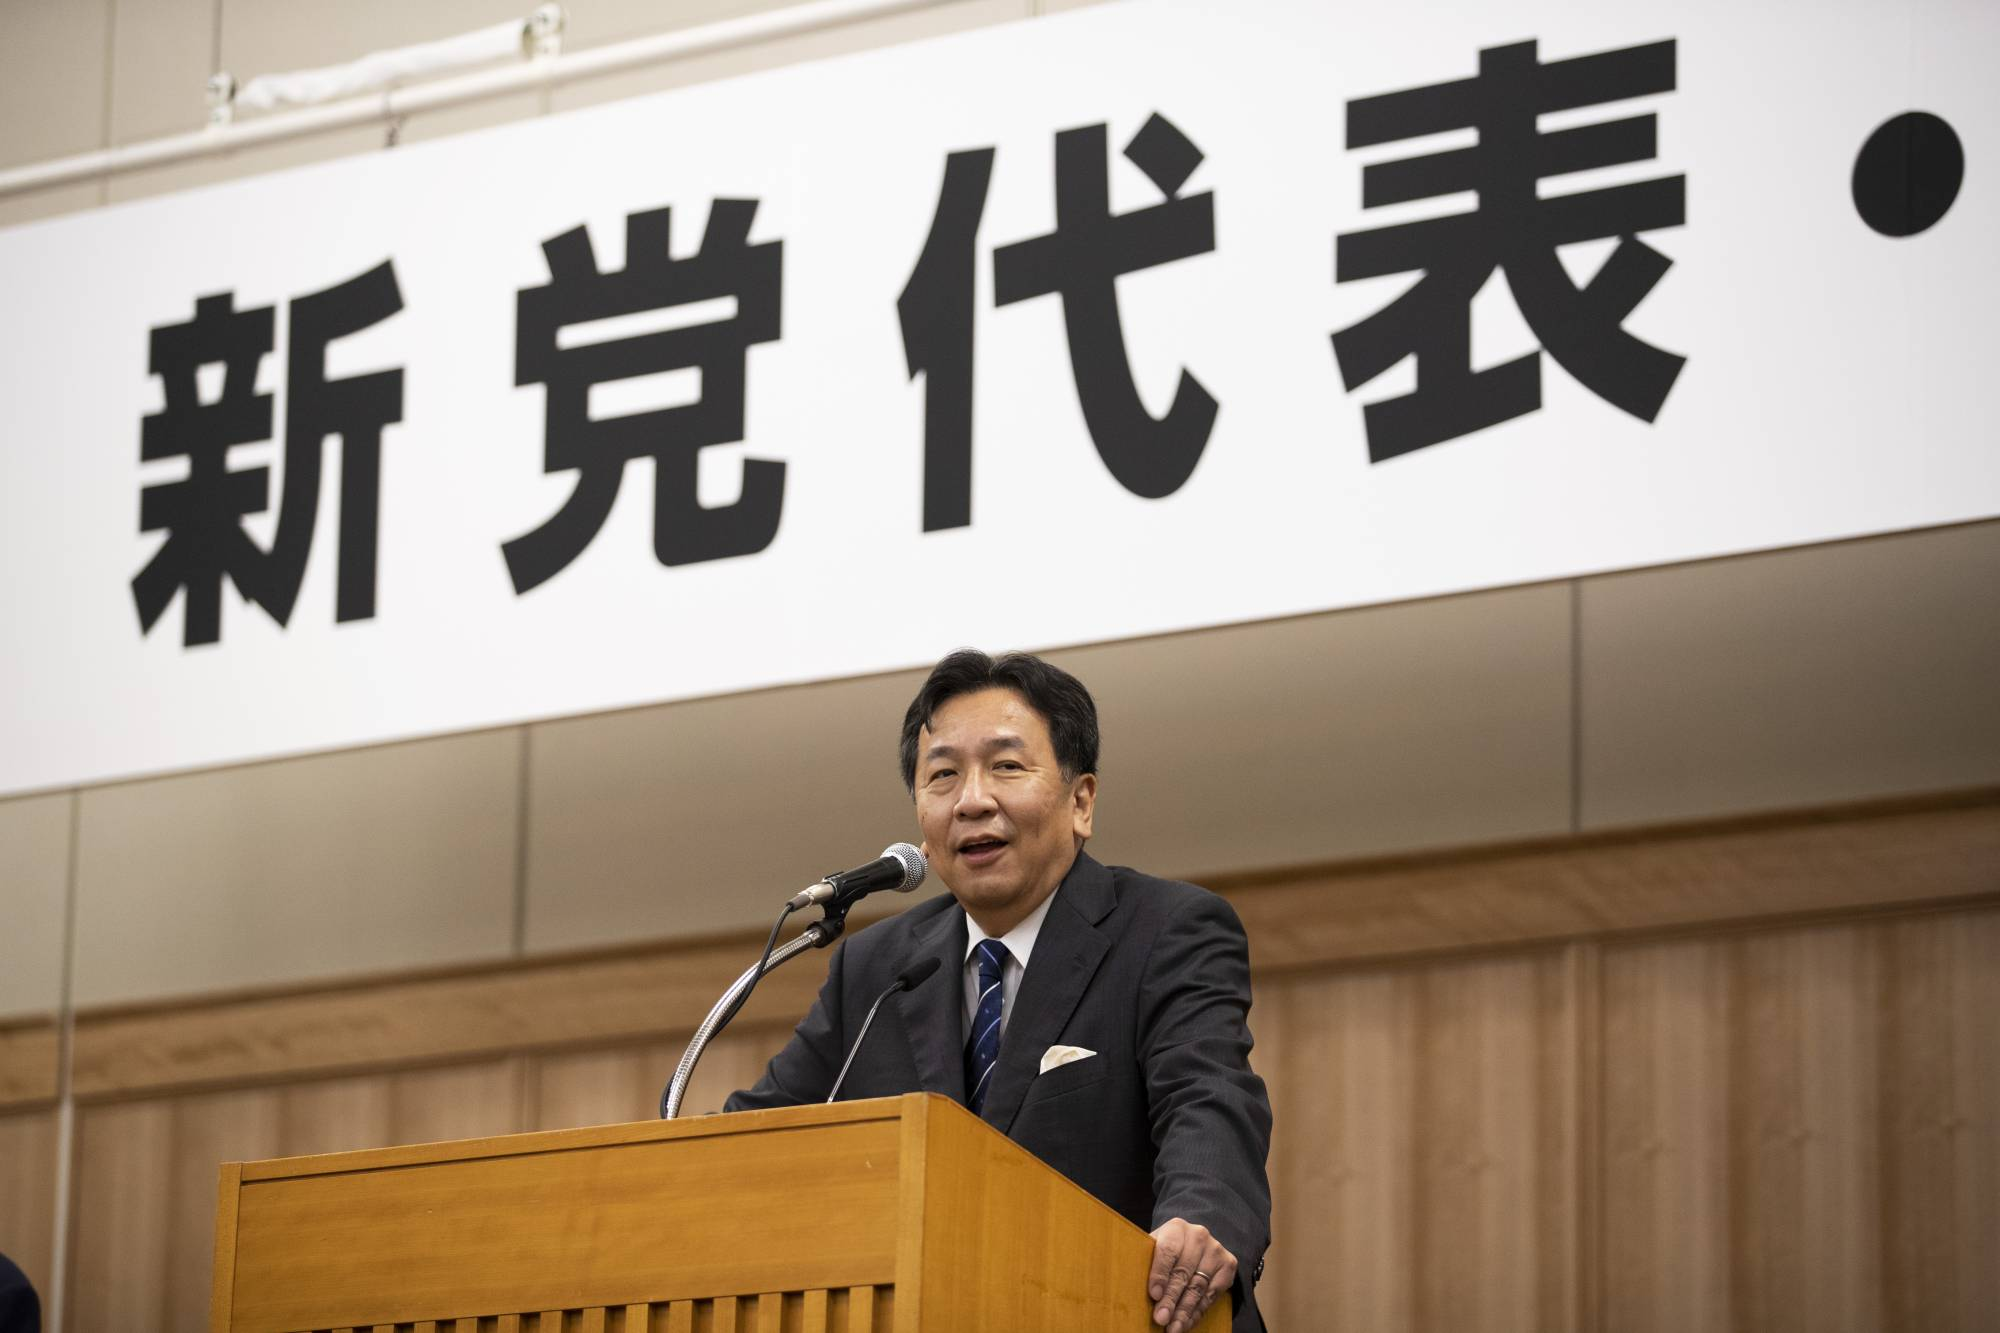 Yukio Edano, leader of the new Constitutional Democratic Party of Japan, speaks during a news conference in Tokyo on Thursday. | AP